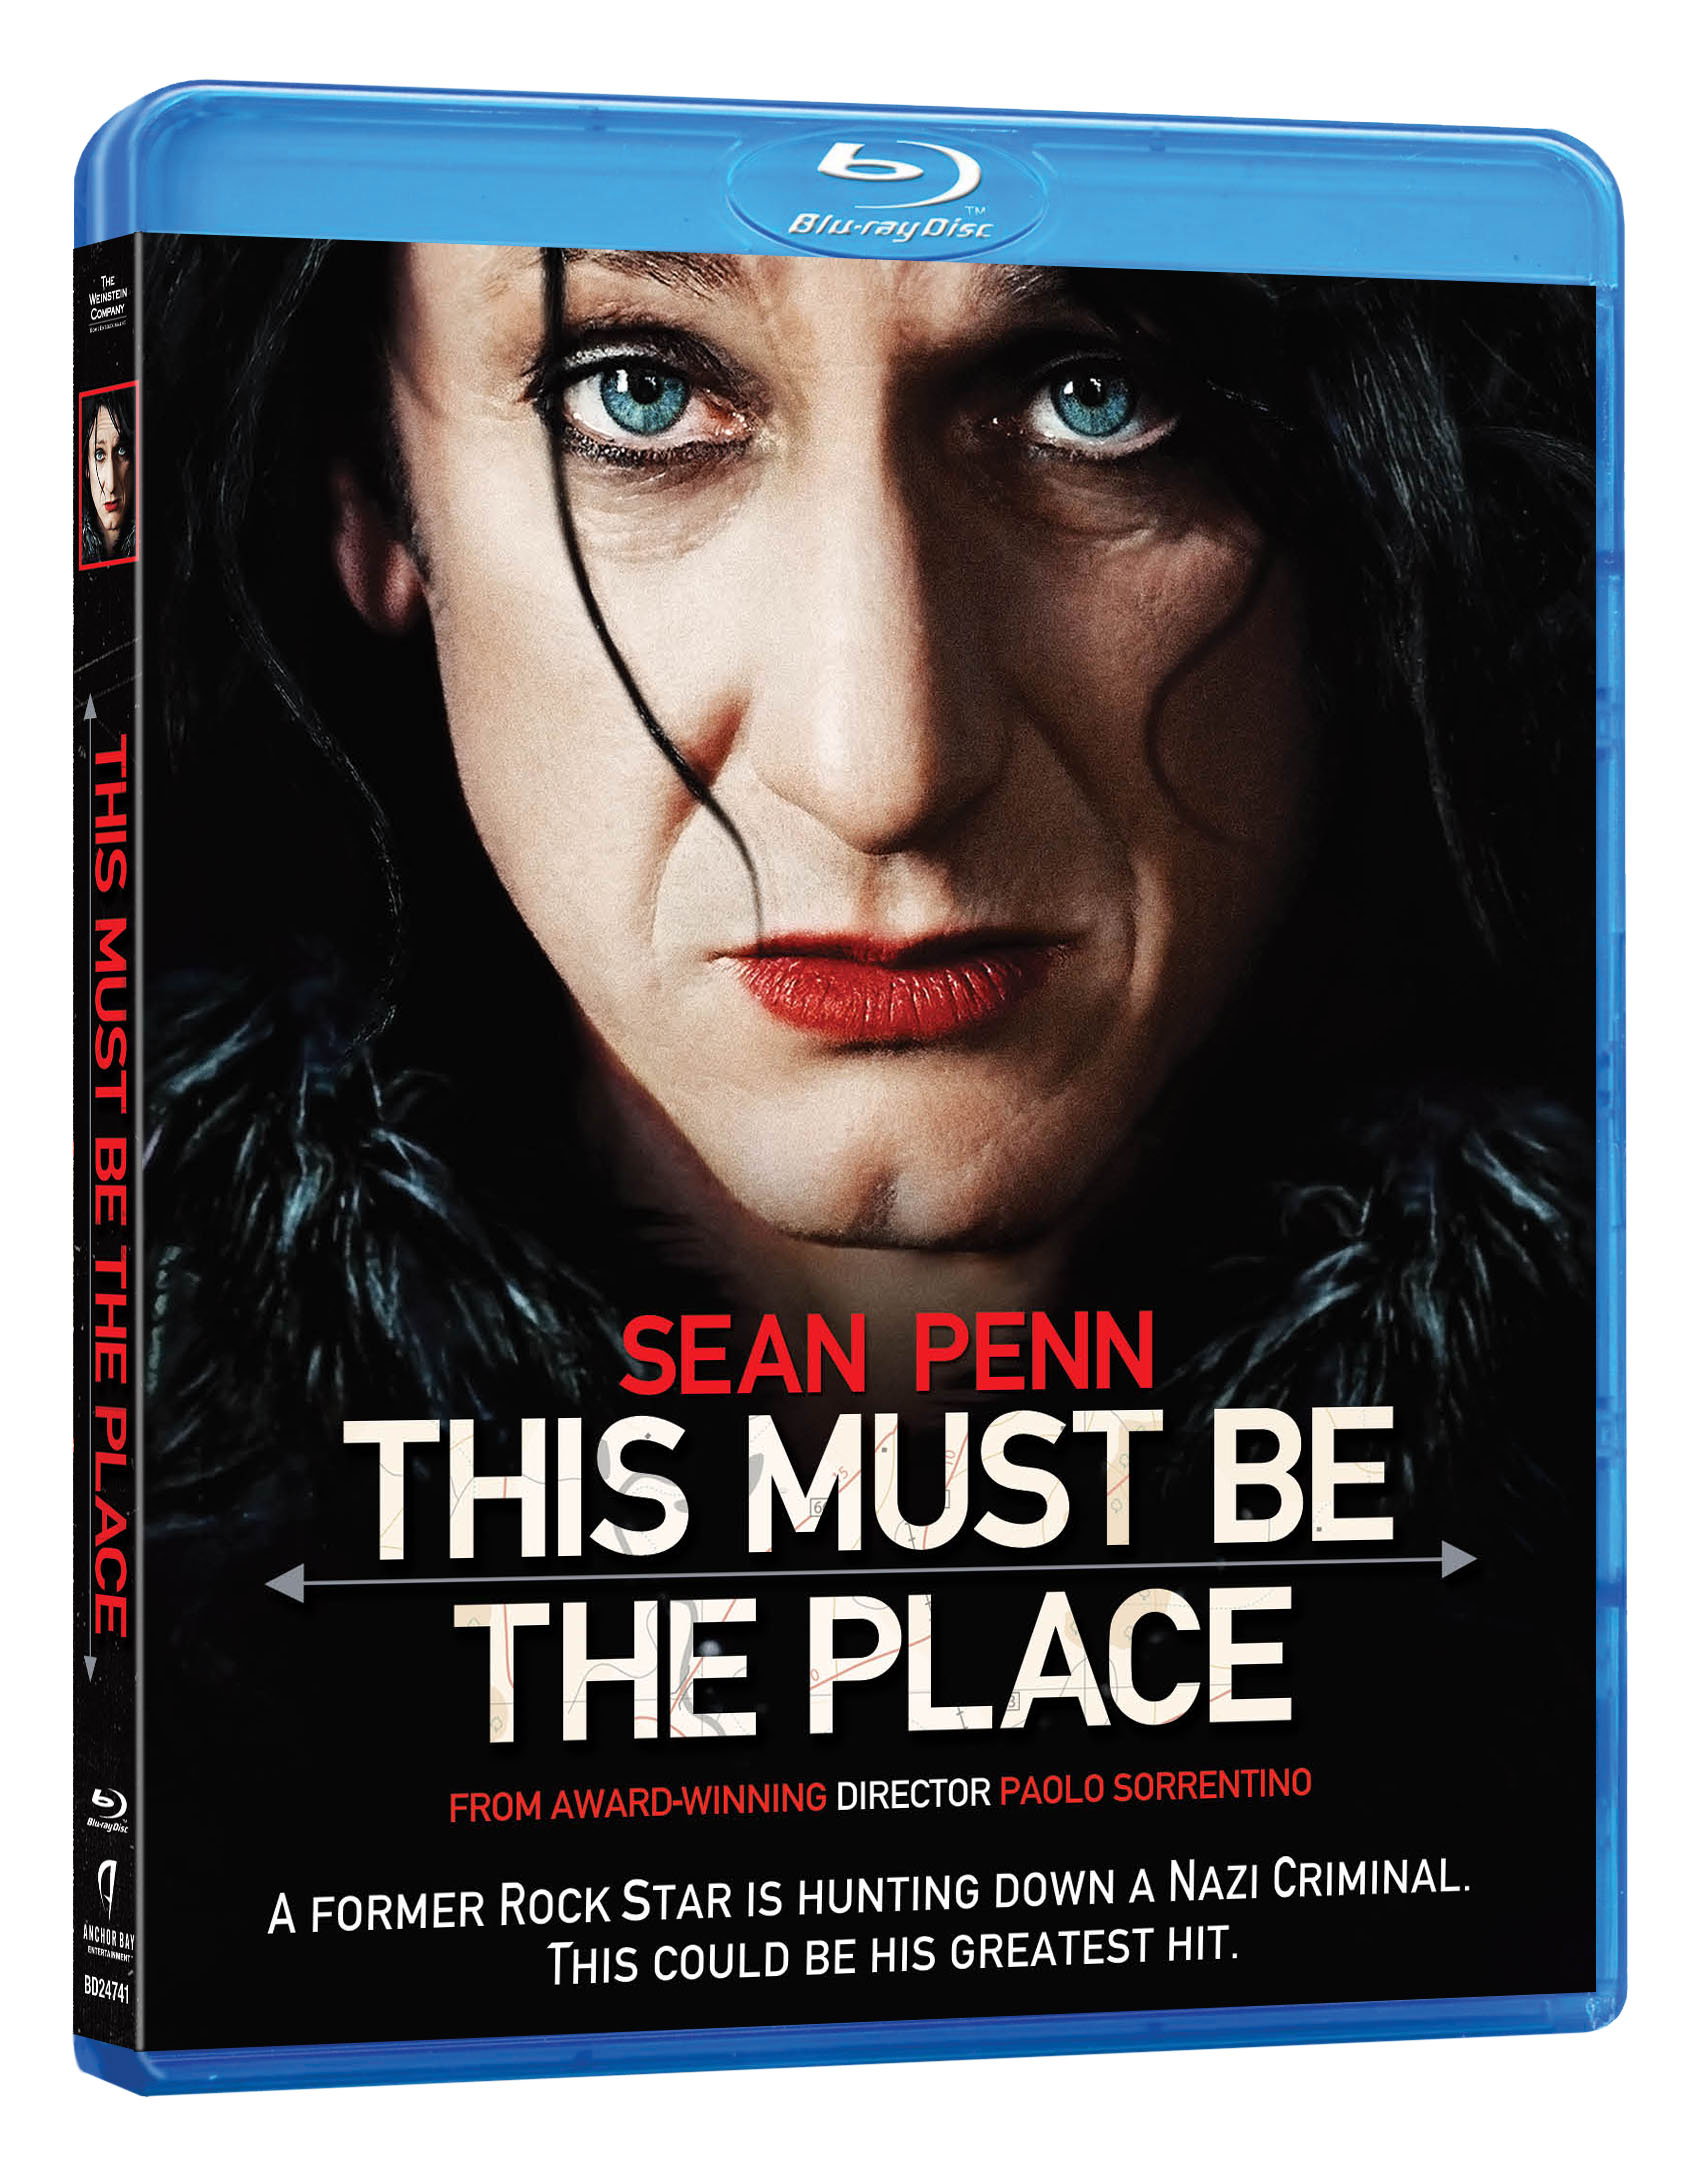 TMBTP bd 3d1 This Must Be The Place On DVD And Blu ray Now